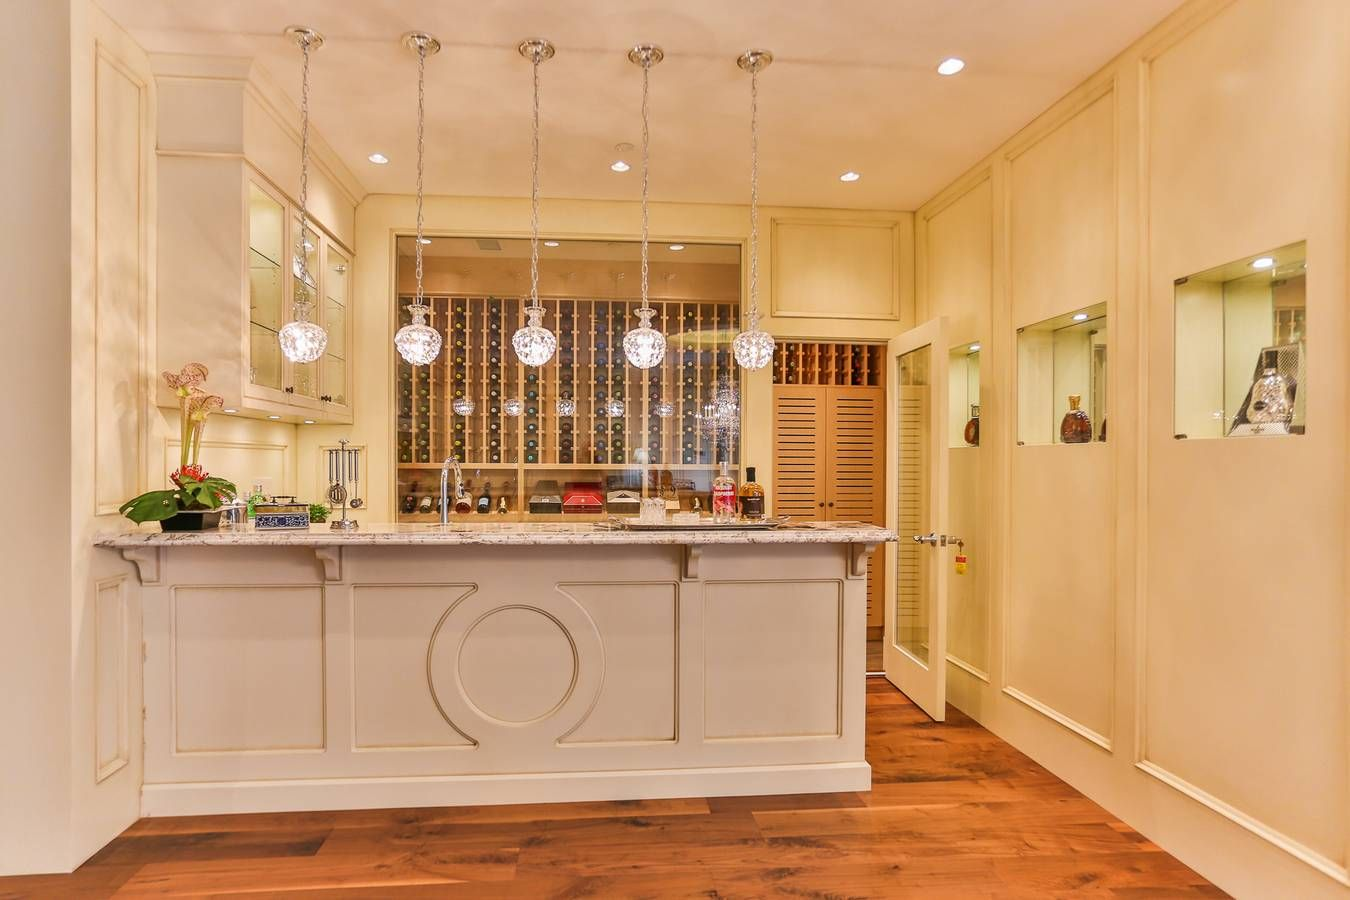 Photo 21: Photos: 5845 WILTSHIRE Street in Vancouver: South Granville House for sale (Vancouver West)  : MLS®# R2132563